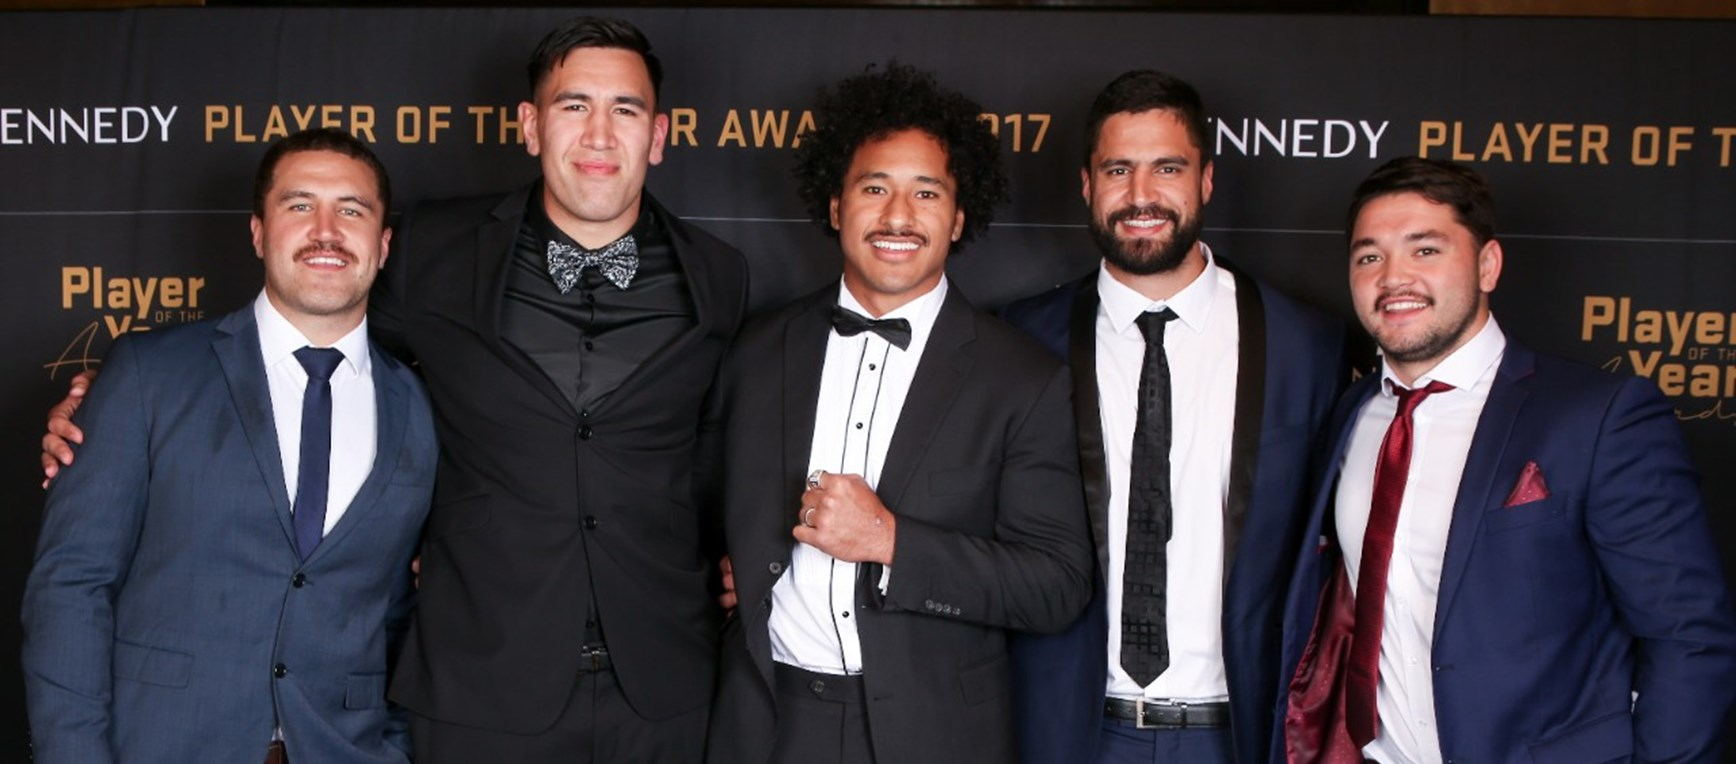 In Pictures: 2017 Player of the Year awards